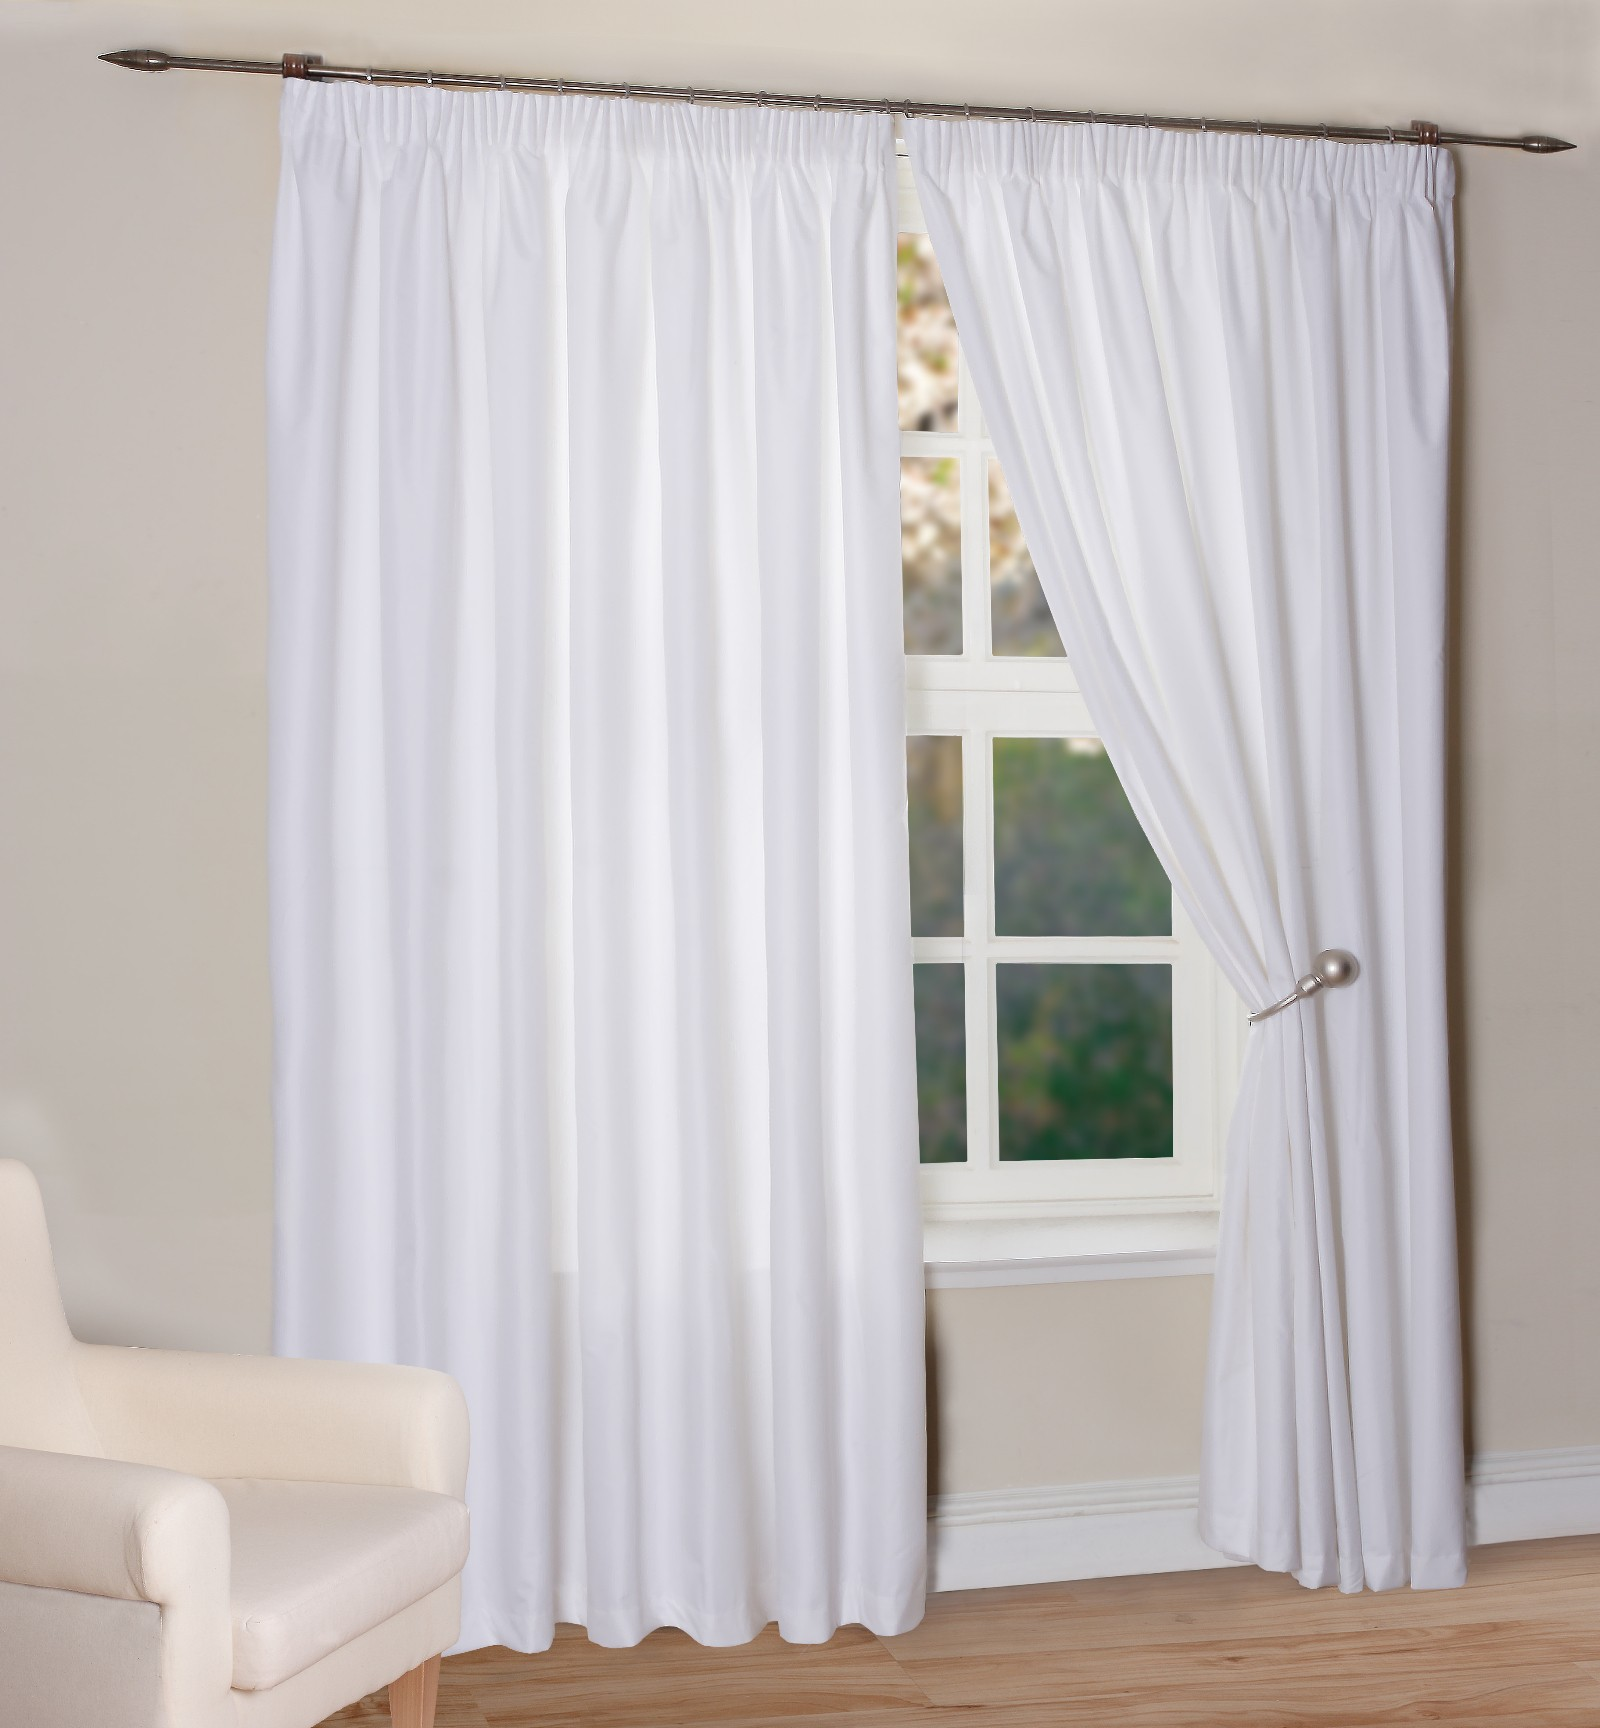 Blind Amp Curtain Brilliant Soundproof Curtains Target For Best Curtain Ideas